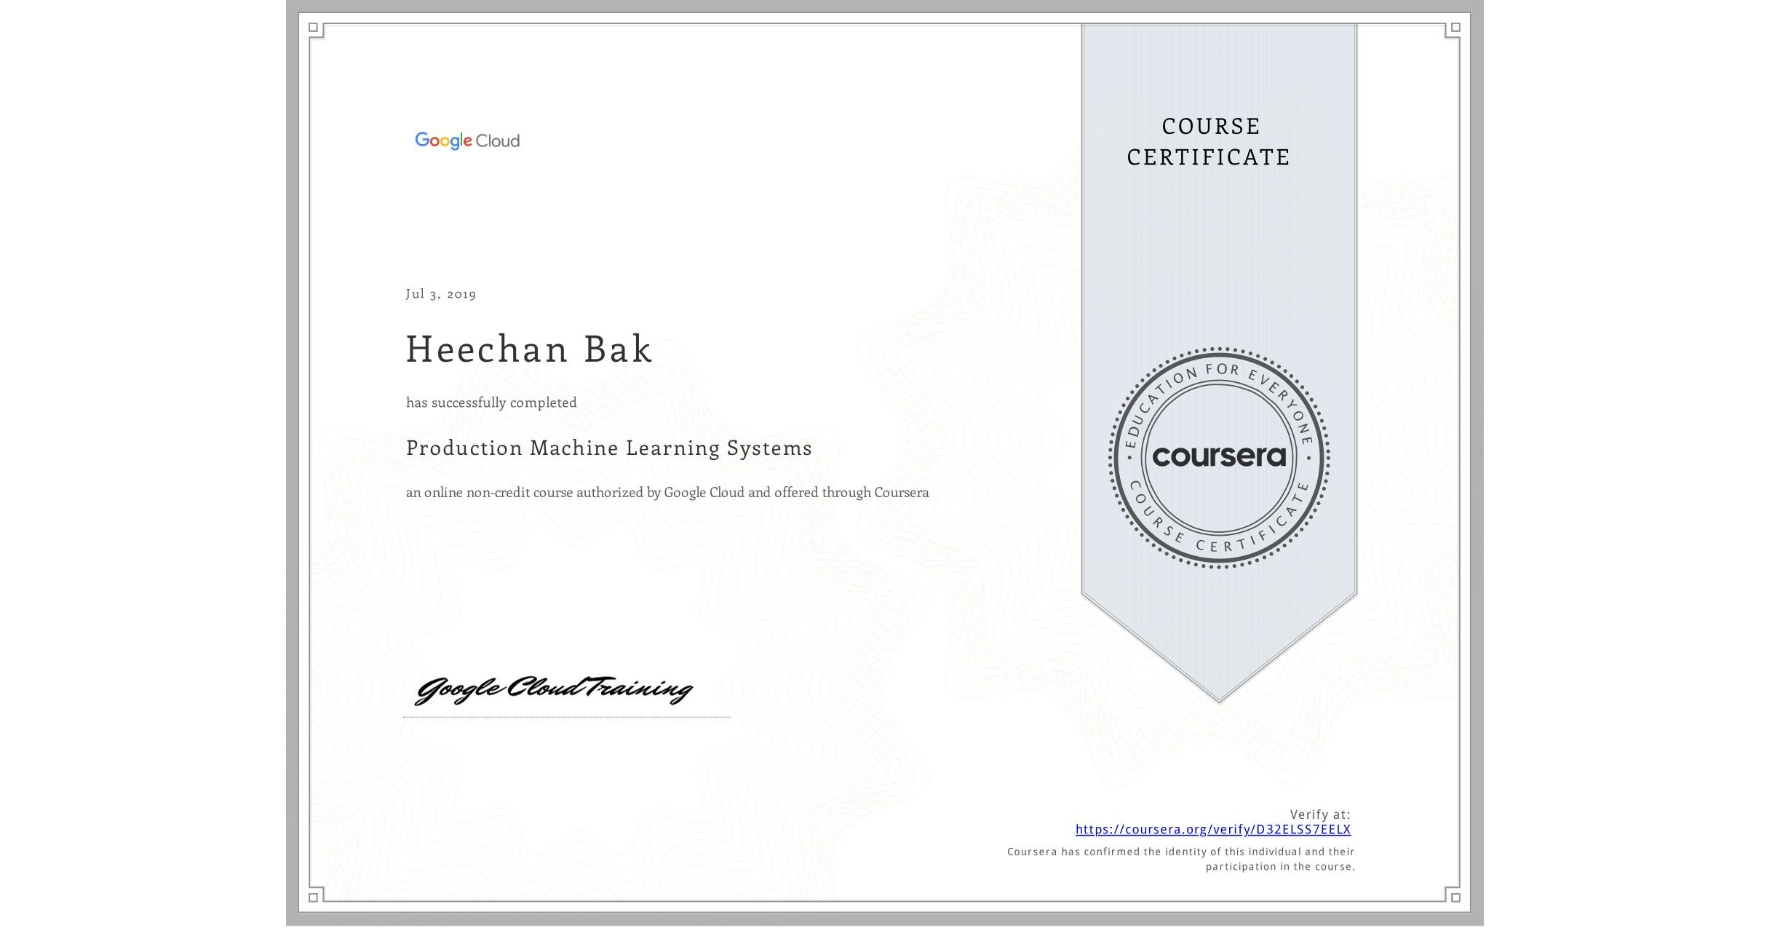 View certificate for Heechan Bak, Production Machine Learning Systems, an online non-credit course authorized by Google Cloud and offered through Coursera